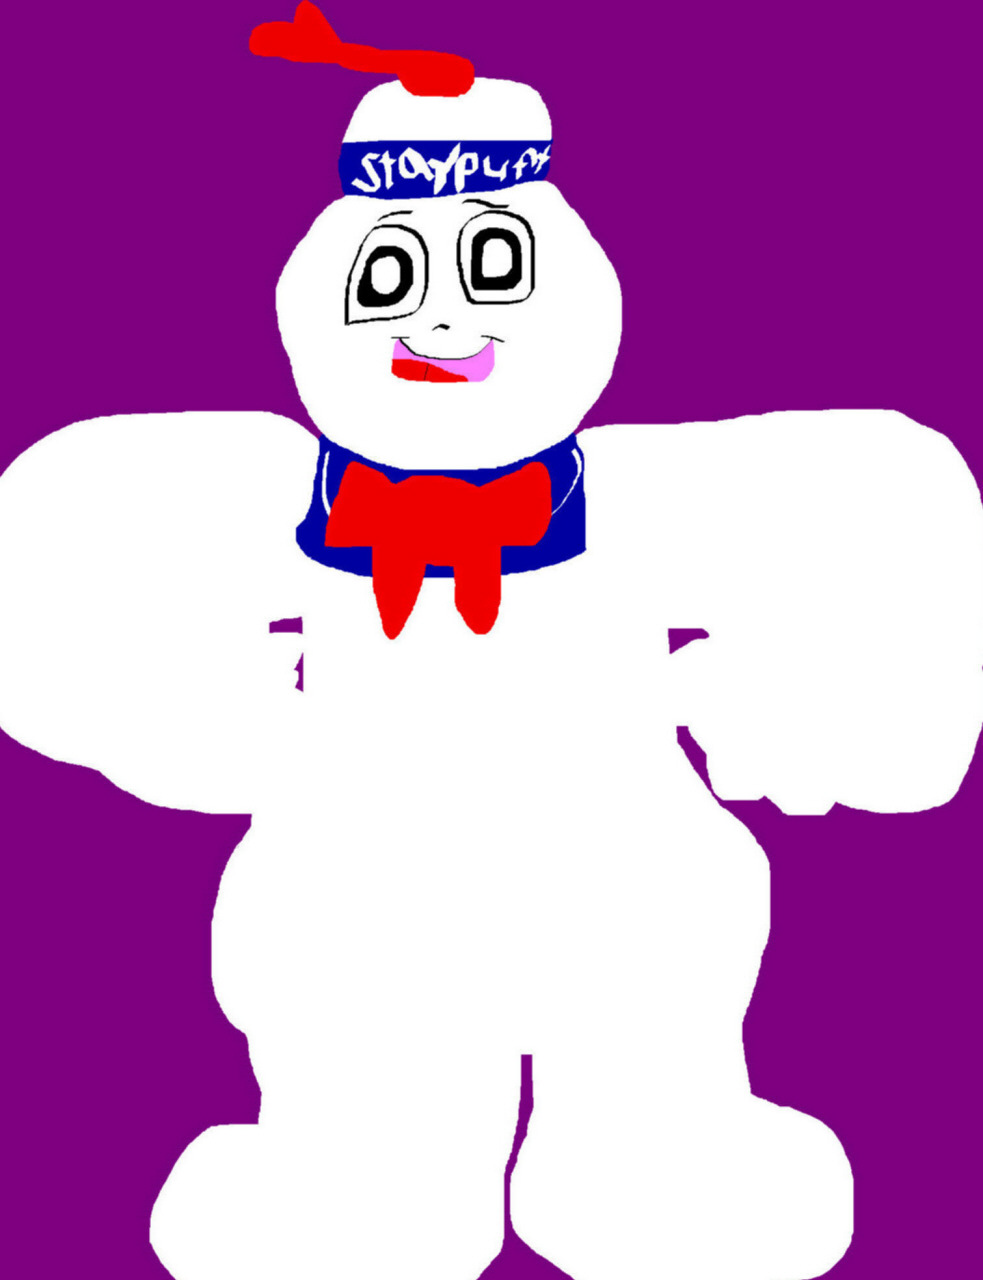 Staypuft Marshmallow Man MS Paint Again^^ by Falconlobo